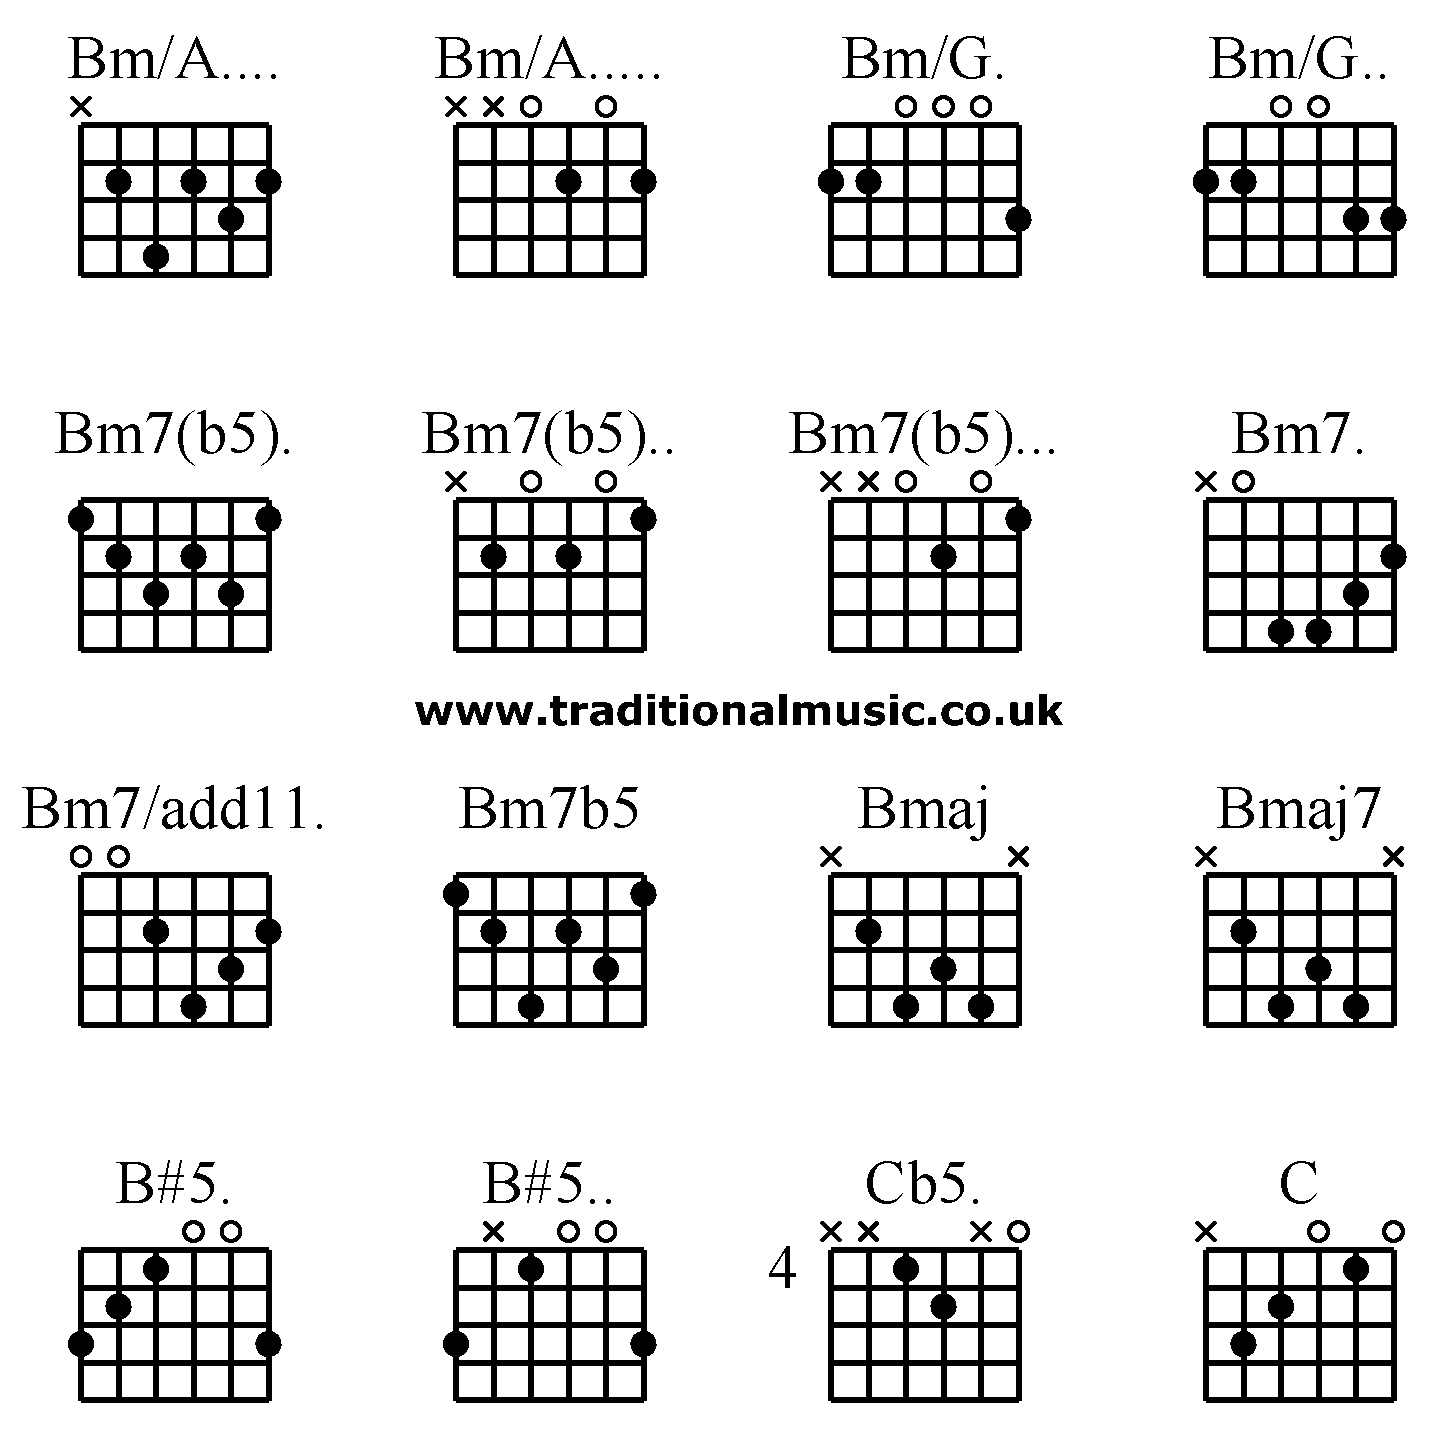 Guitar Chords Advanced Bma Bma Bmg Bmg Bm7b5 Bm7b5